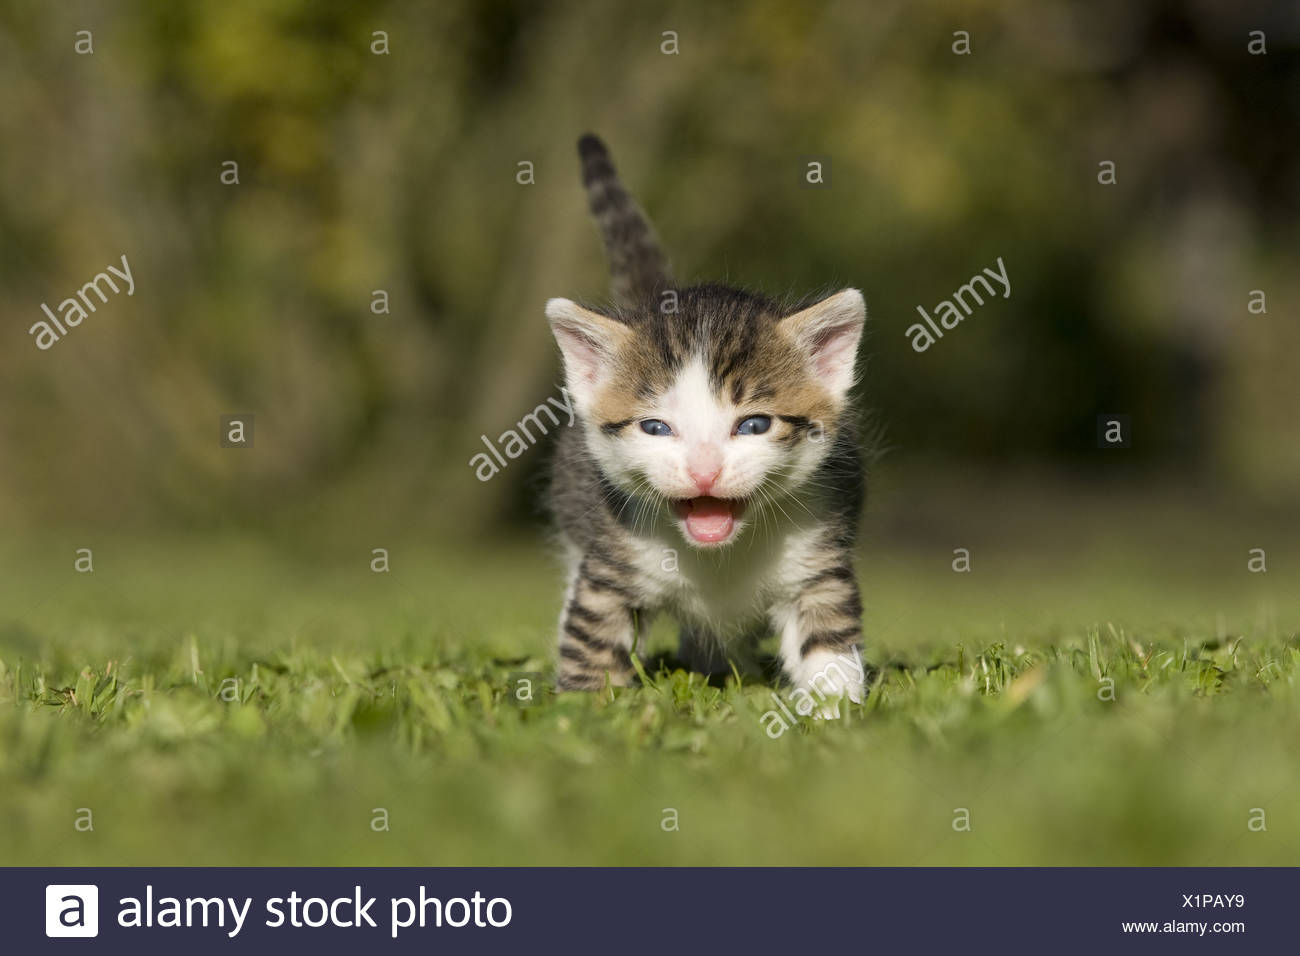 Katze, Kaetzchen miauend, lachend auf Wiese, Cat, kitten laughing, miaowing on a meadow Stock Photo